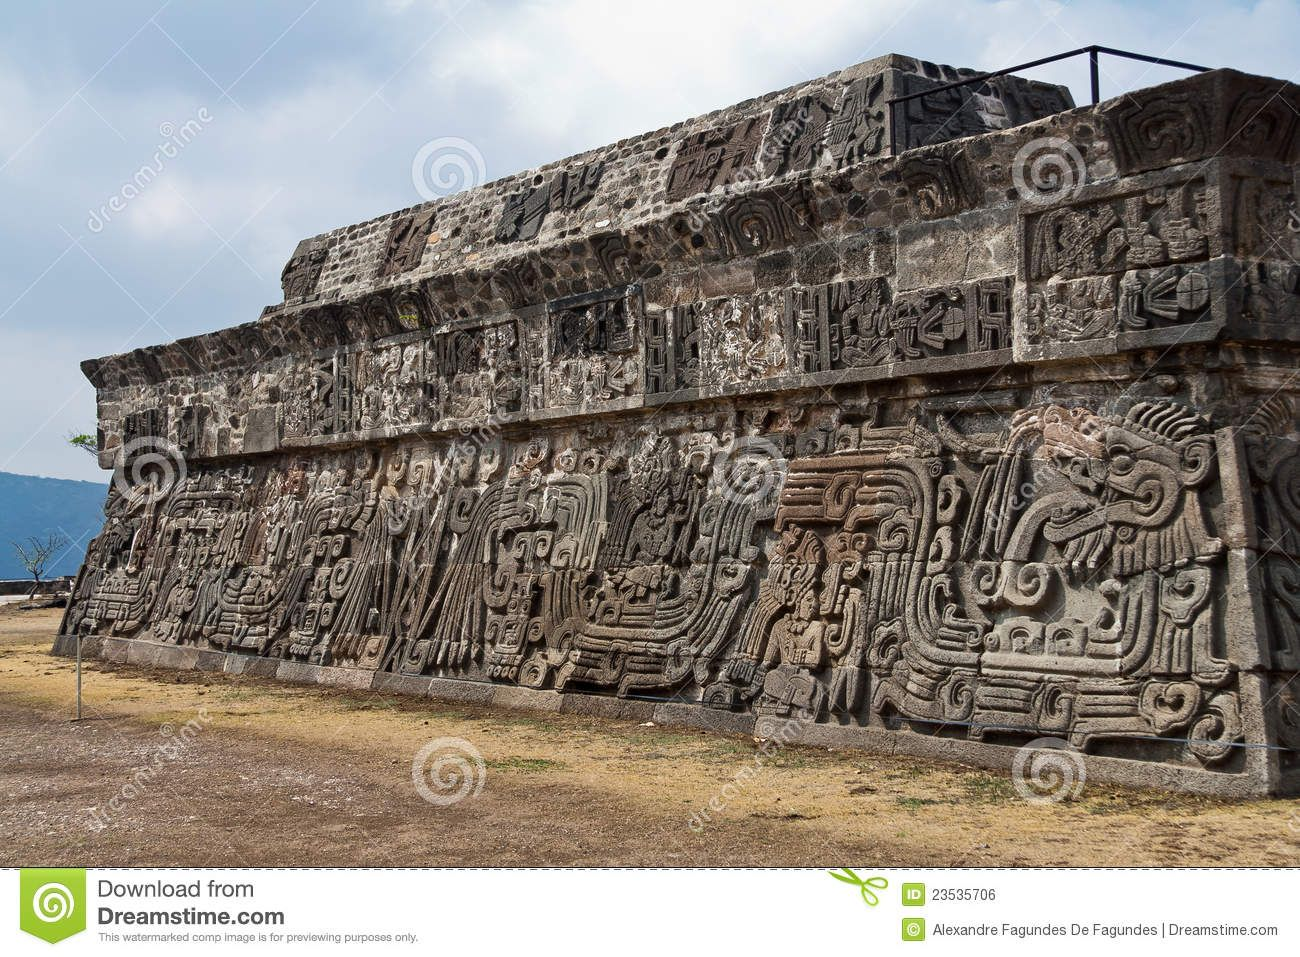 aztec architecture - Google Search | Wood carving ...